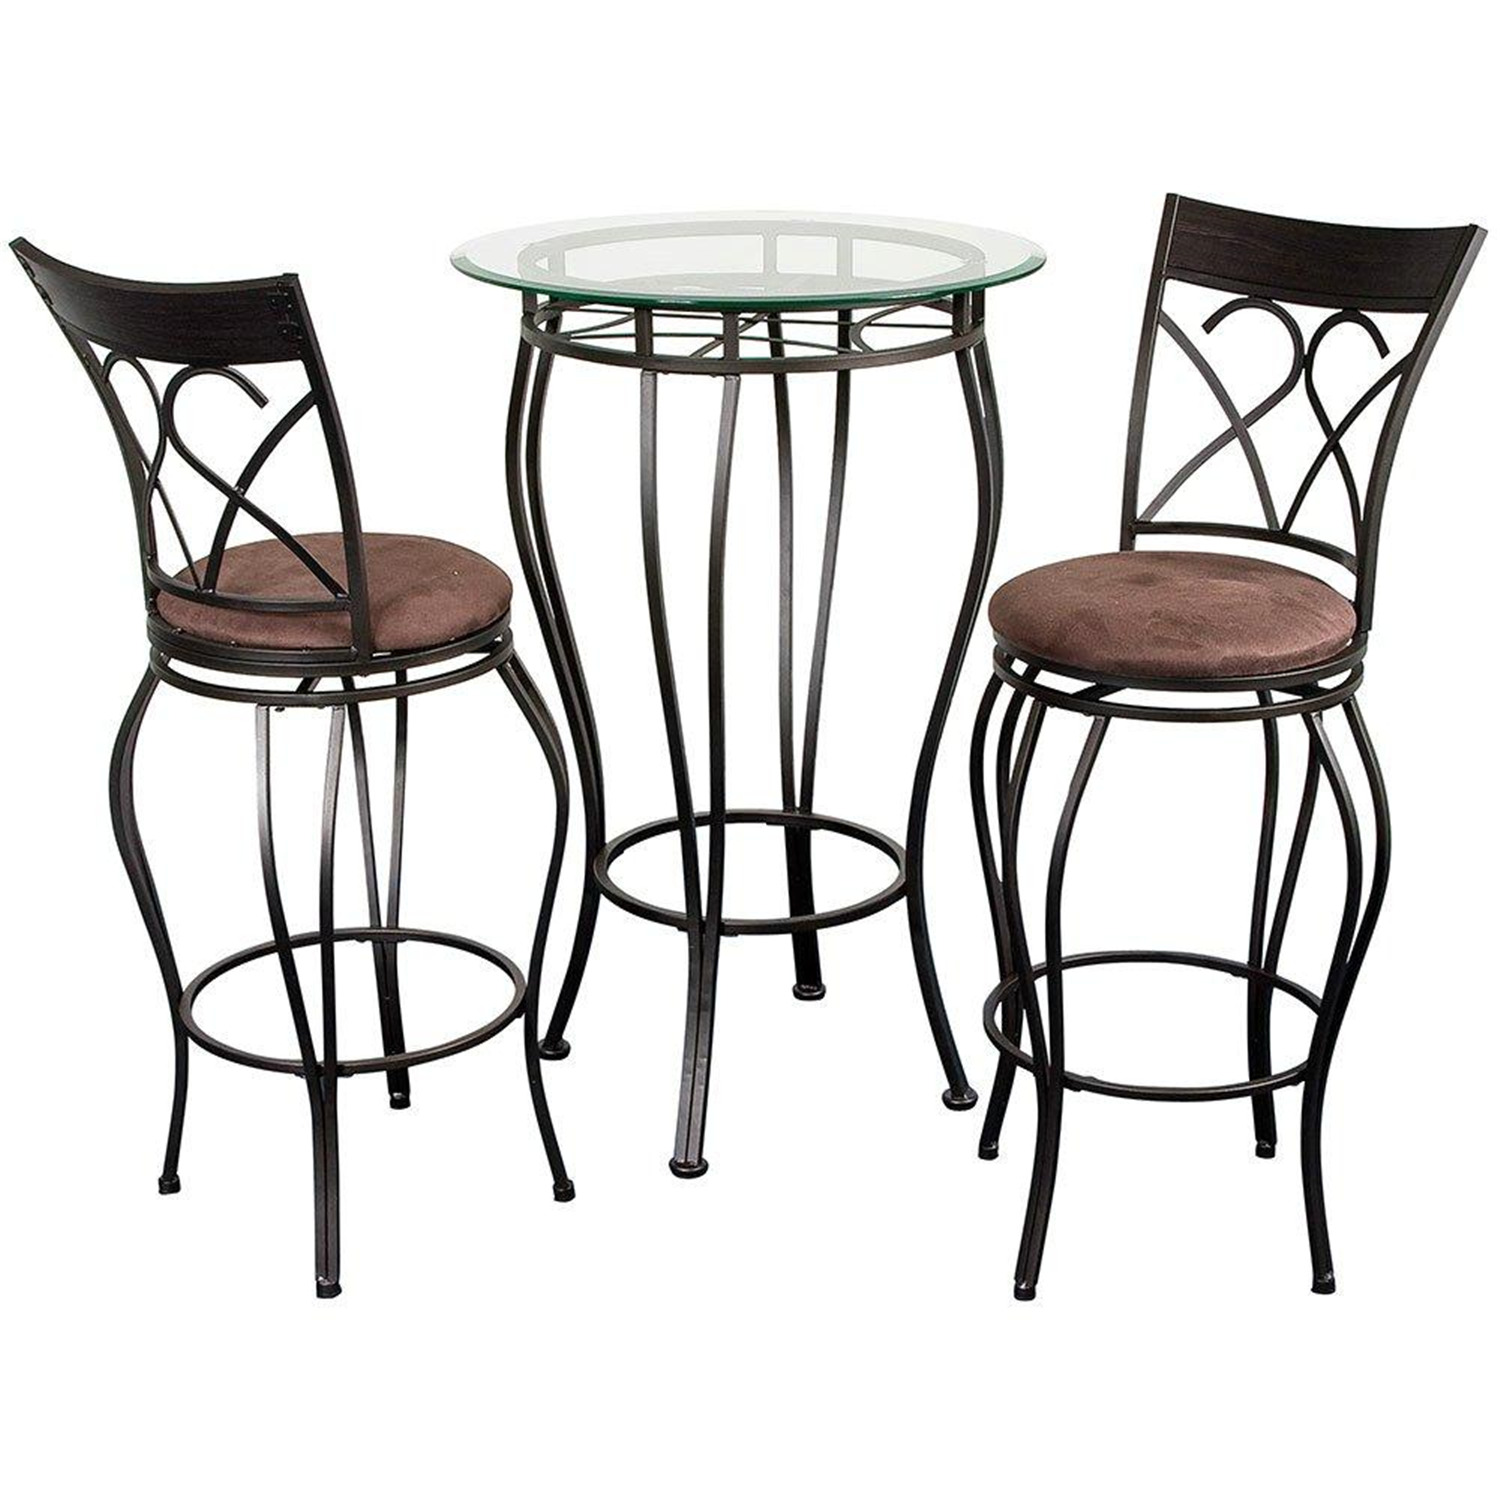 Home source pub table w 2 stools by oj commerce for 99 pub table